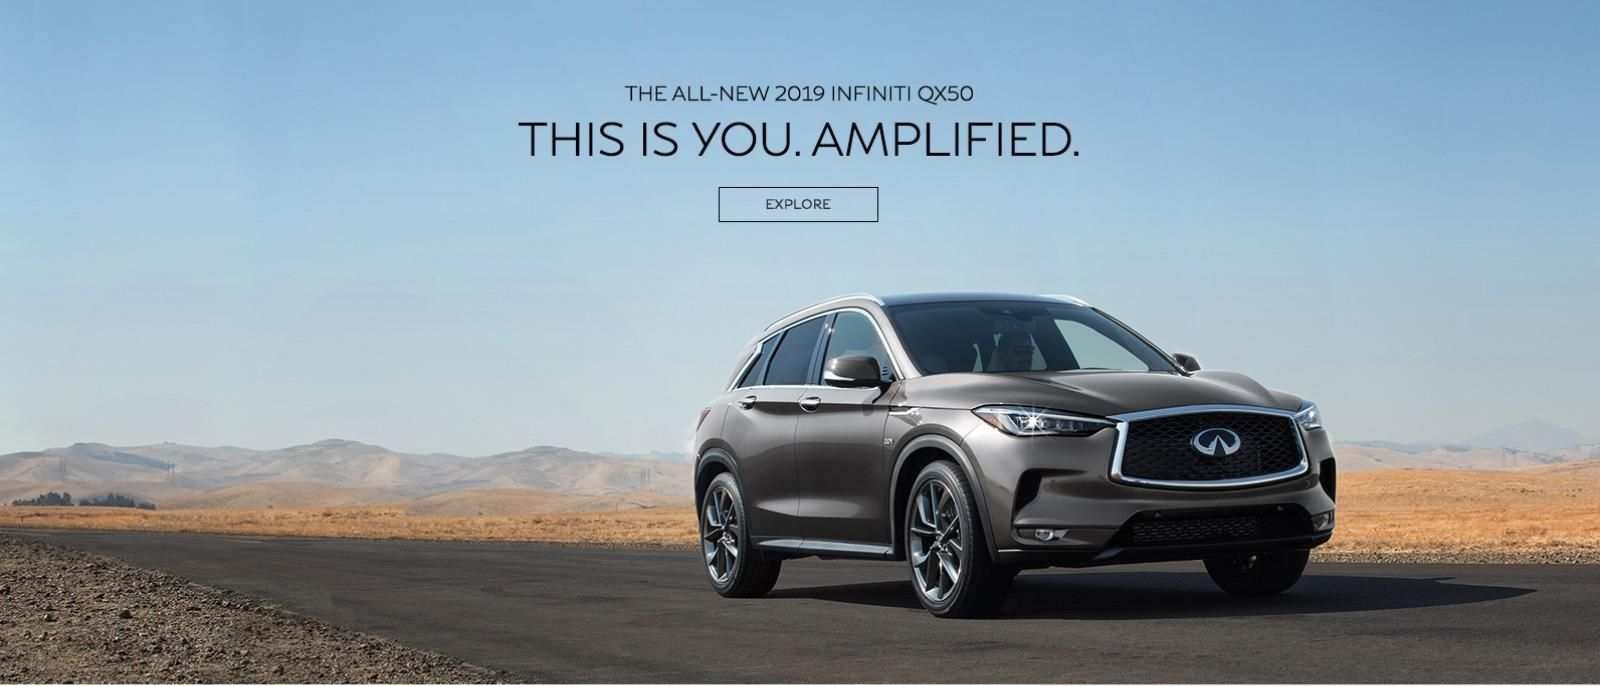 54 All New 2019 Infiniti Commercial Images